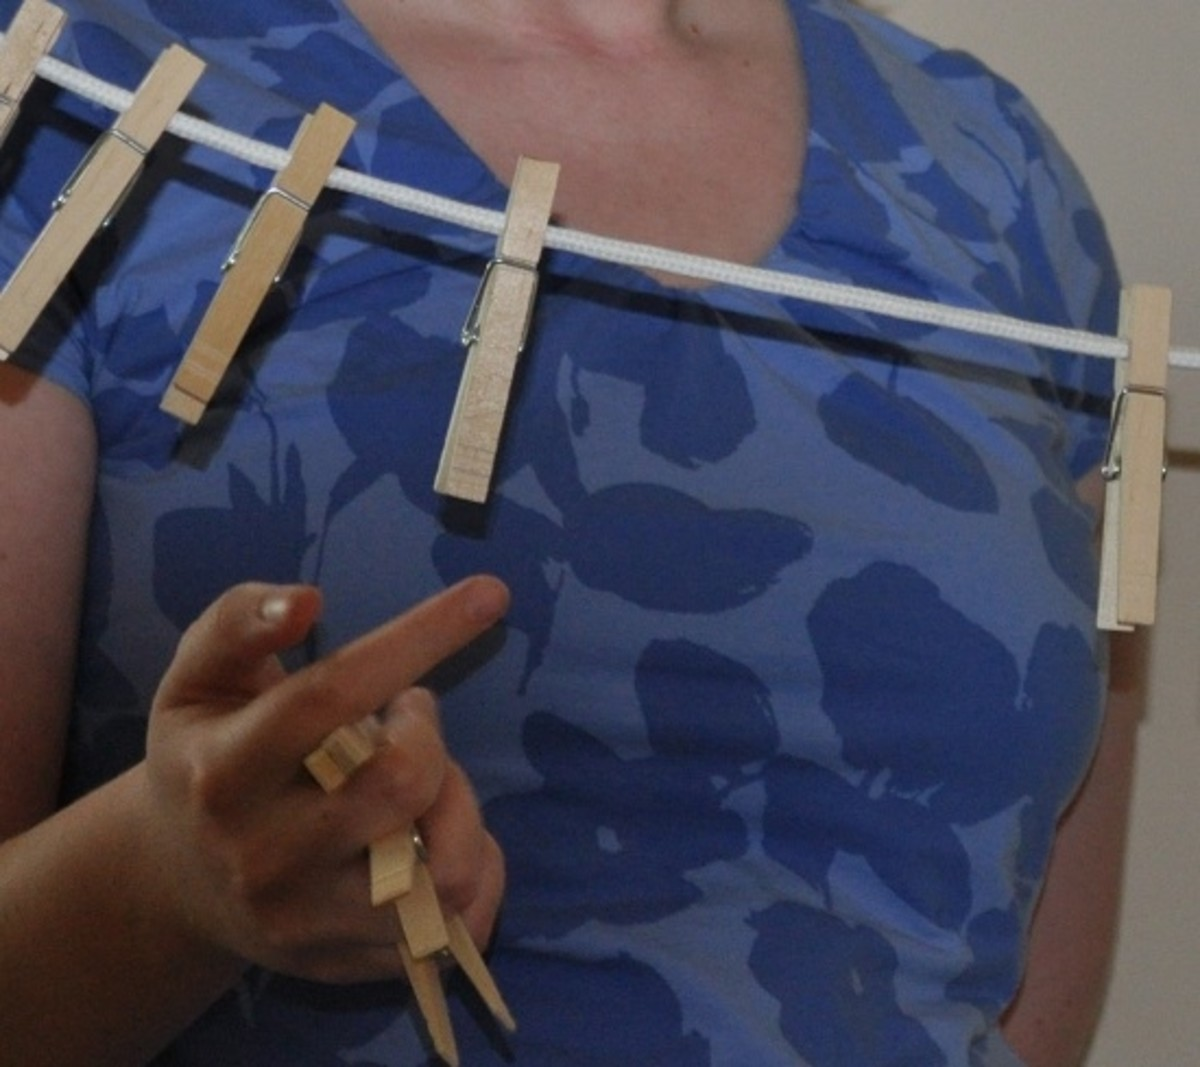 Dexterity rules in the Clothes Pin Shower Game